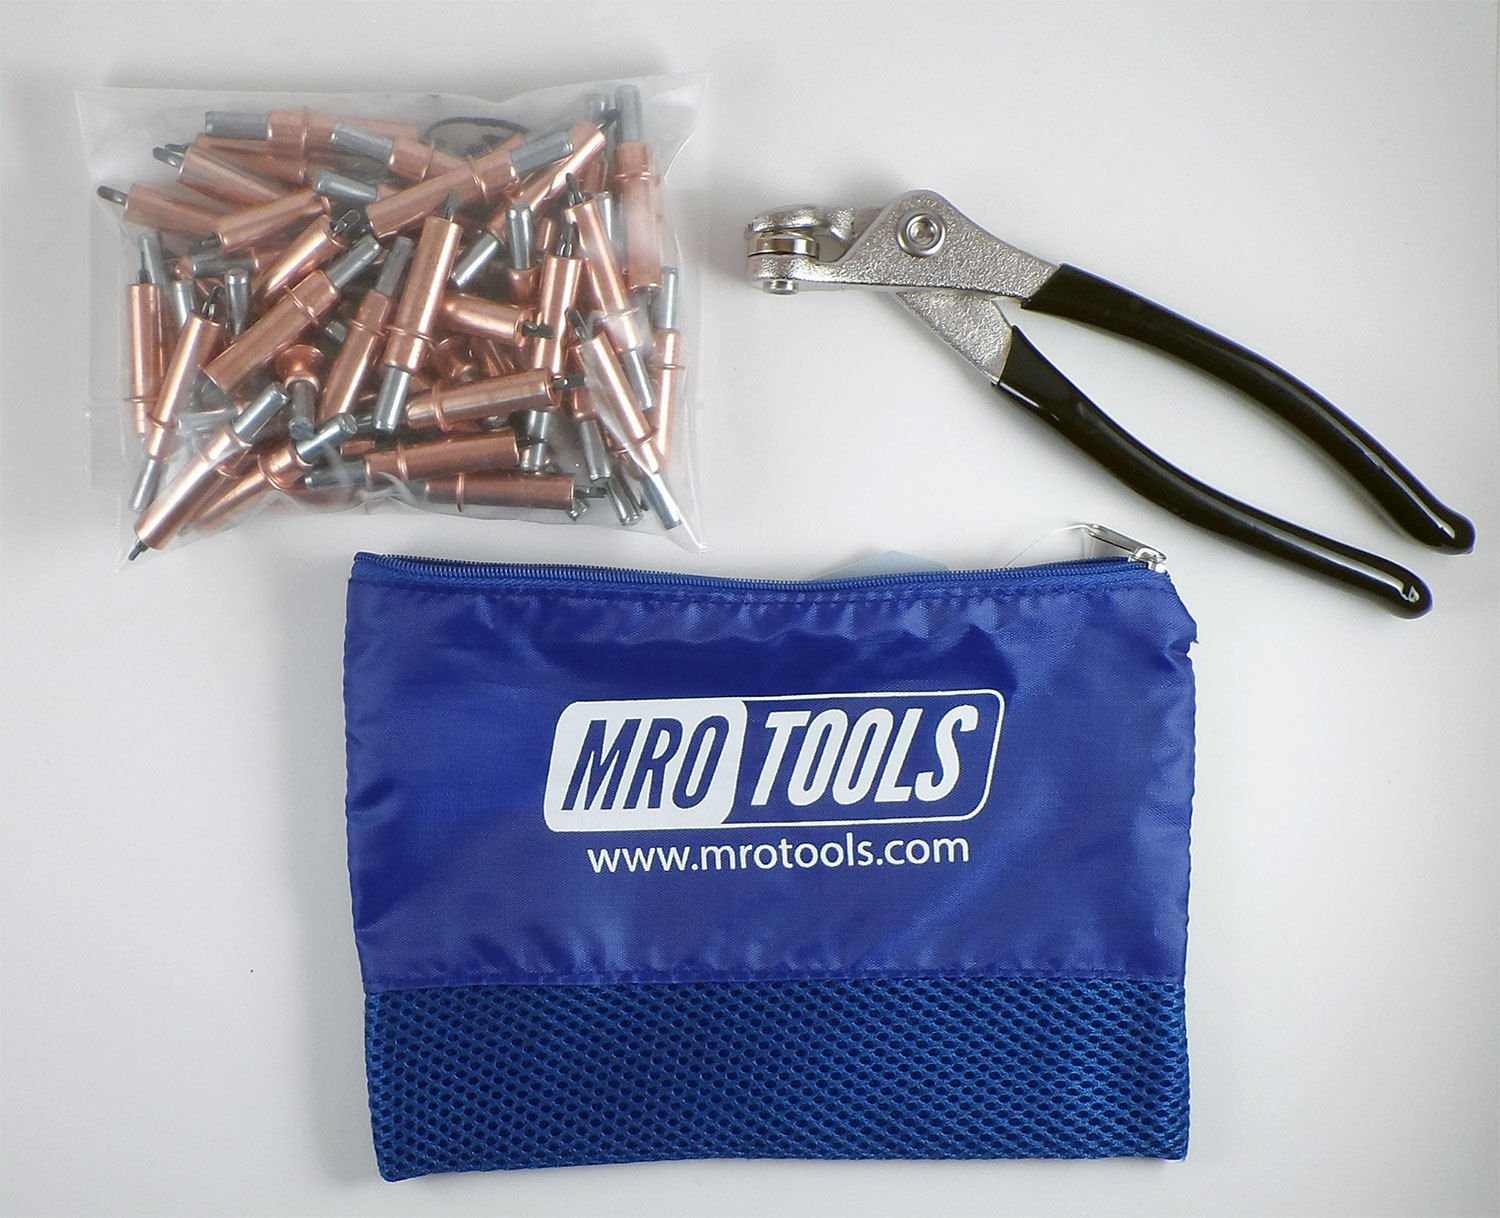 50 1/8 Cleco Sheet Metal Fasteners + Cleco Pliers w/ Carry Bag (K1S50-1/8)